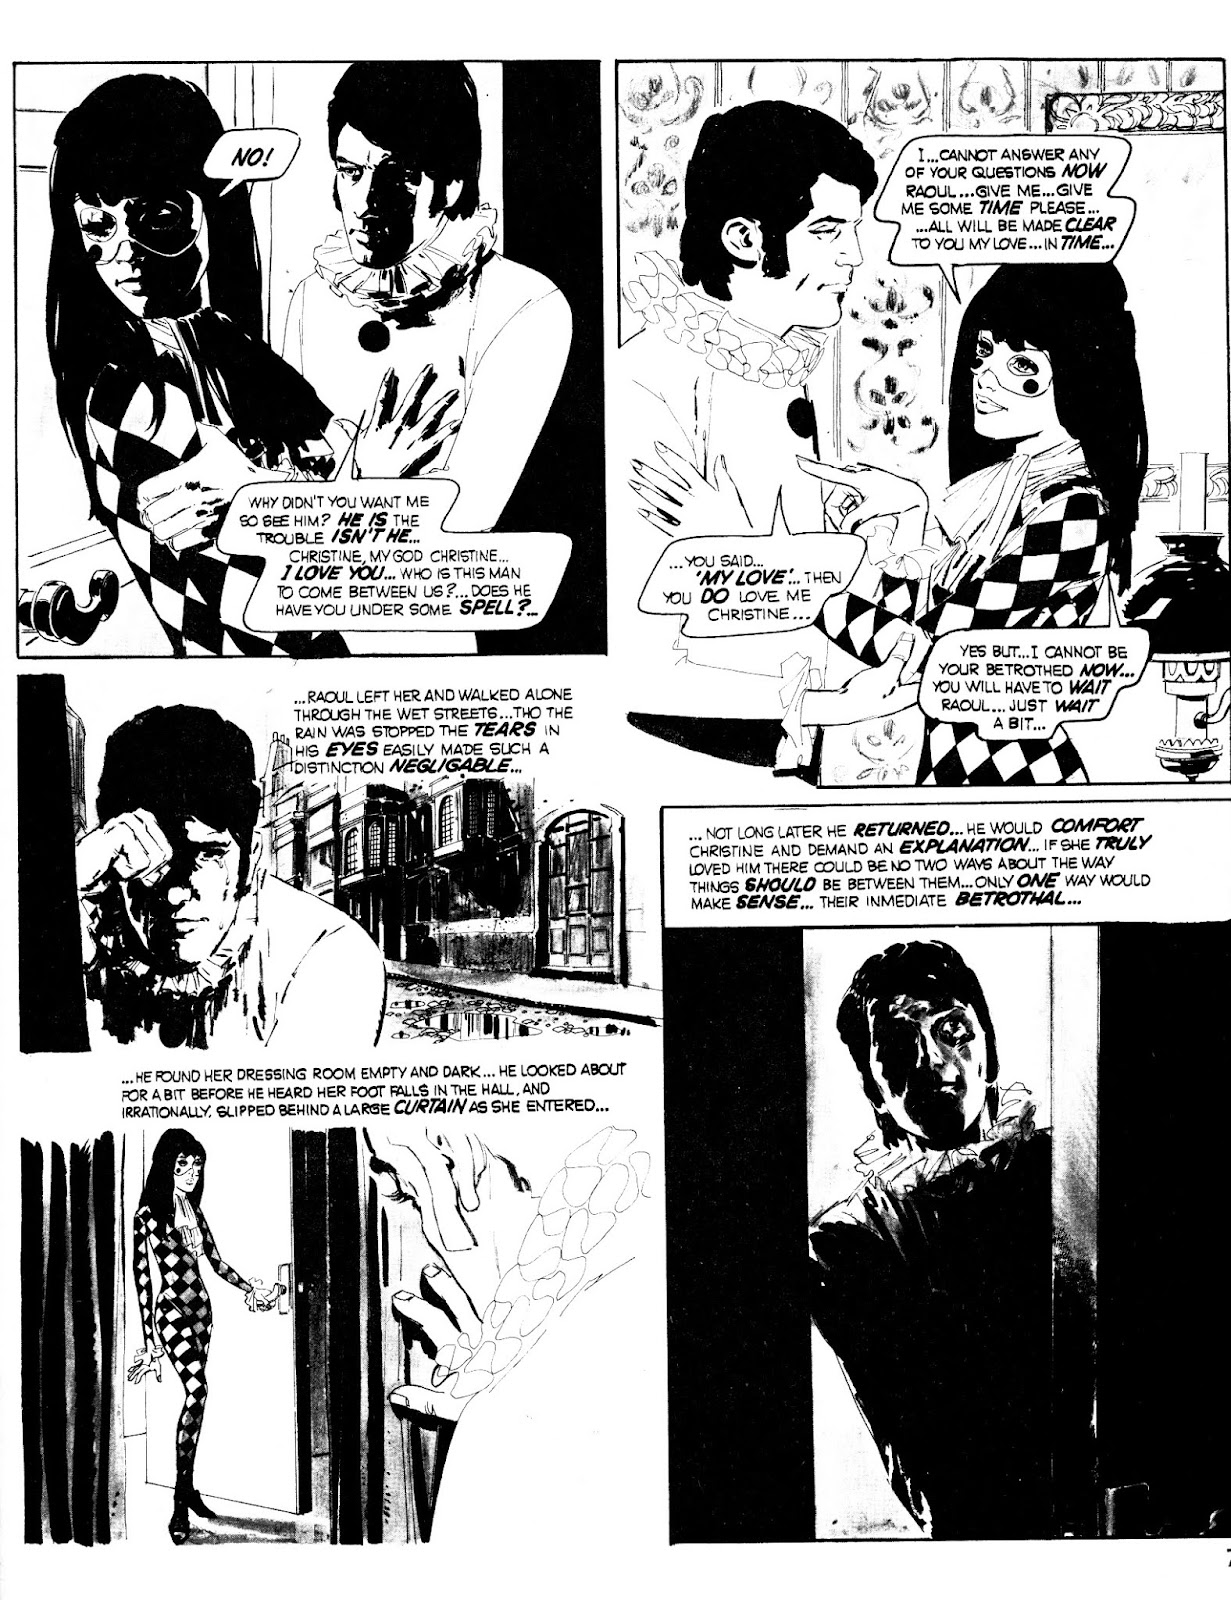 Scream (1973) issue 3 - Page 7